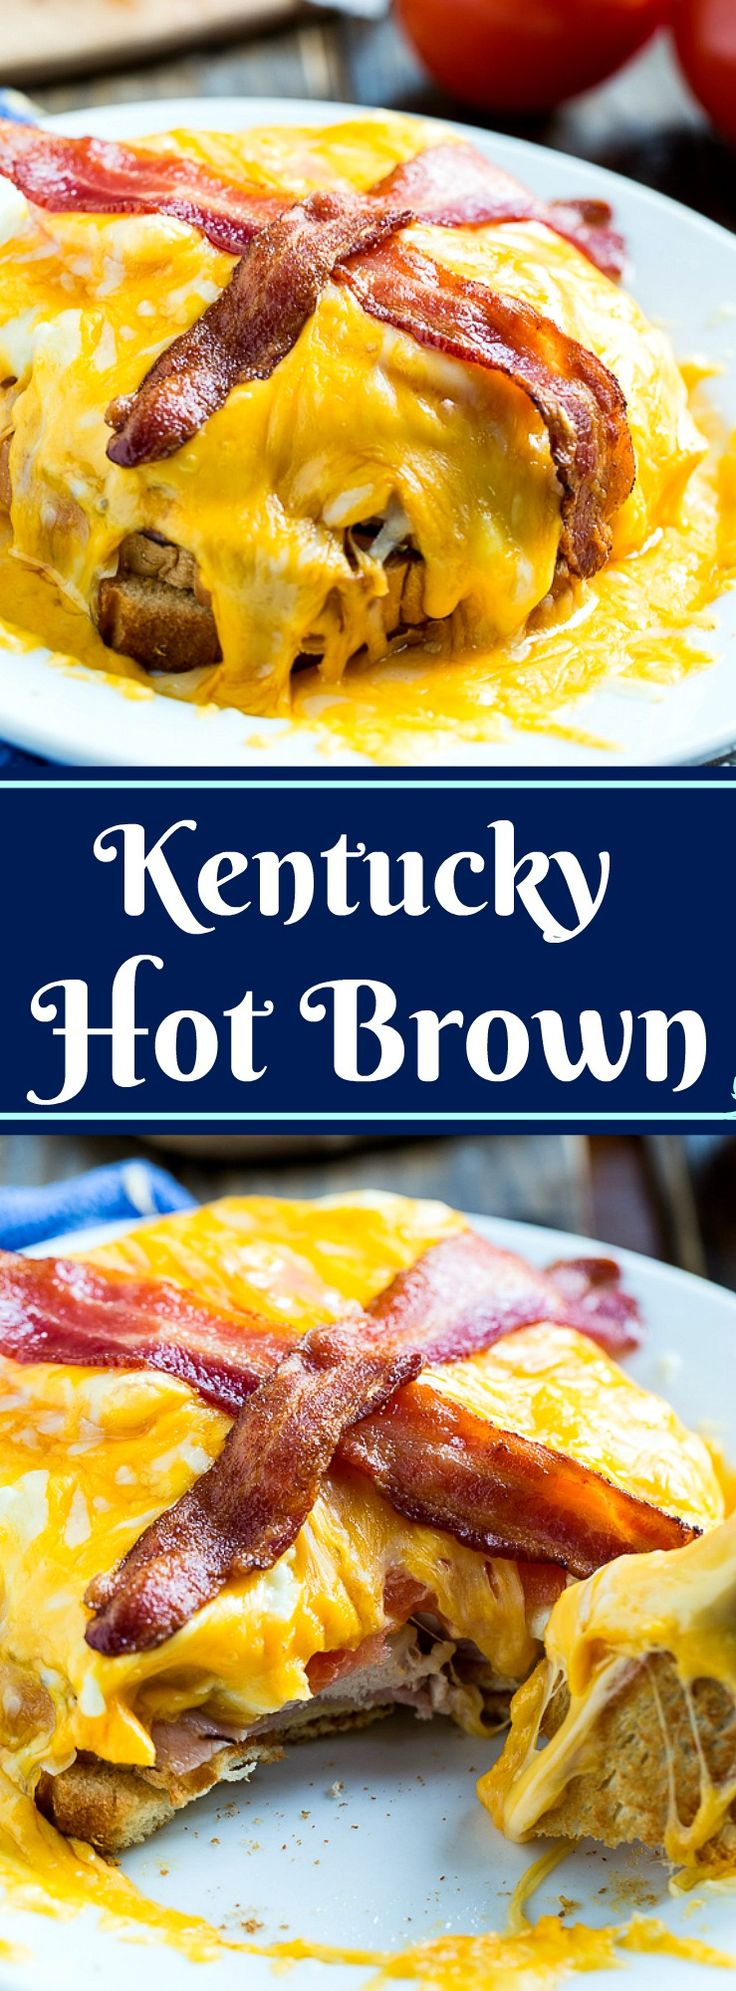 2019 best spicy southern kitchen images on pinterest kentucky hot brown sandwich forumfinder Image collections